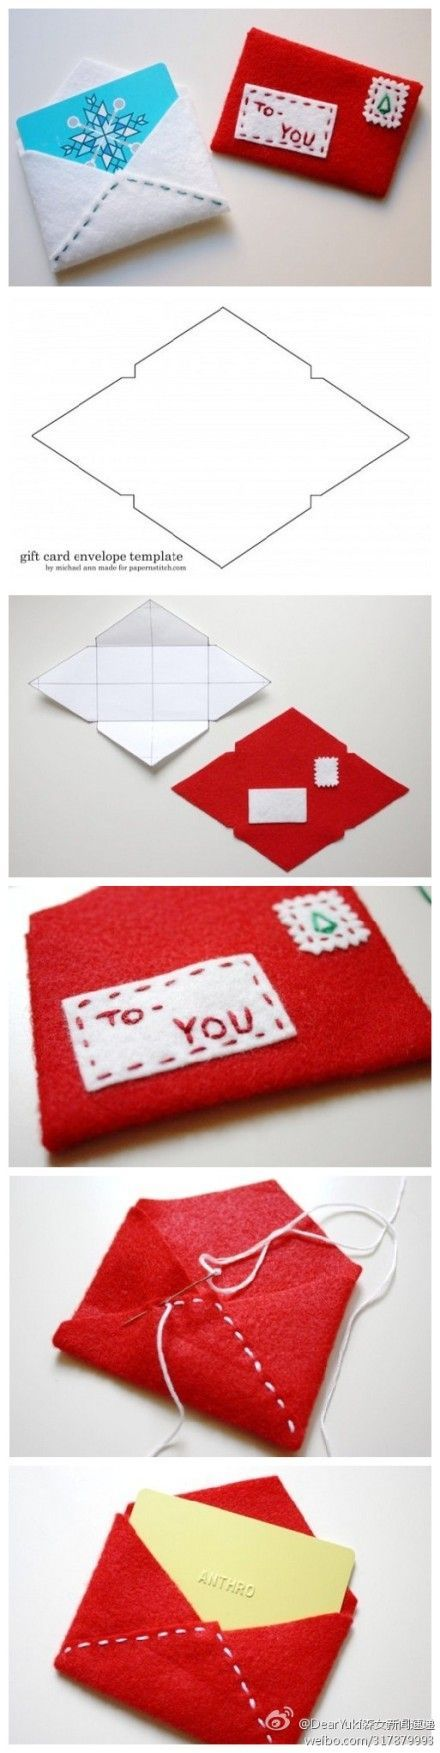 23 delight diy envelopes - photo #25